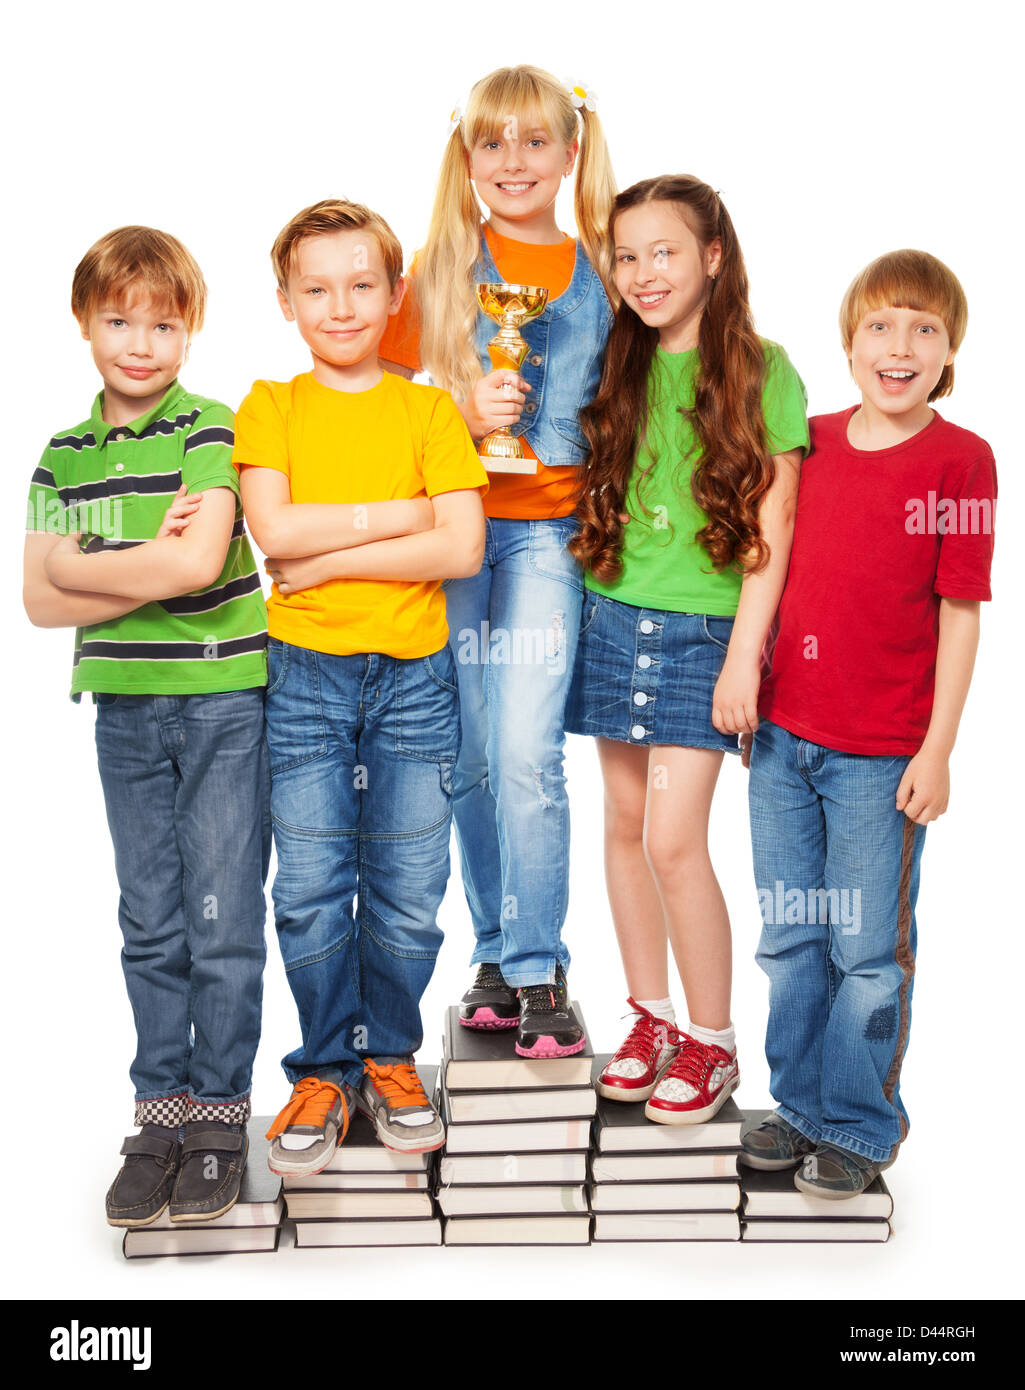 Girls and boys standing on books holding their award - Stock Image